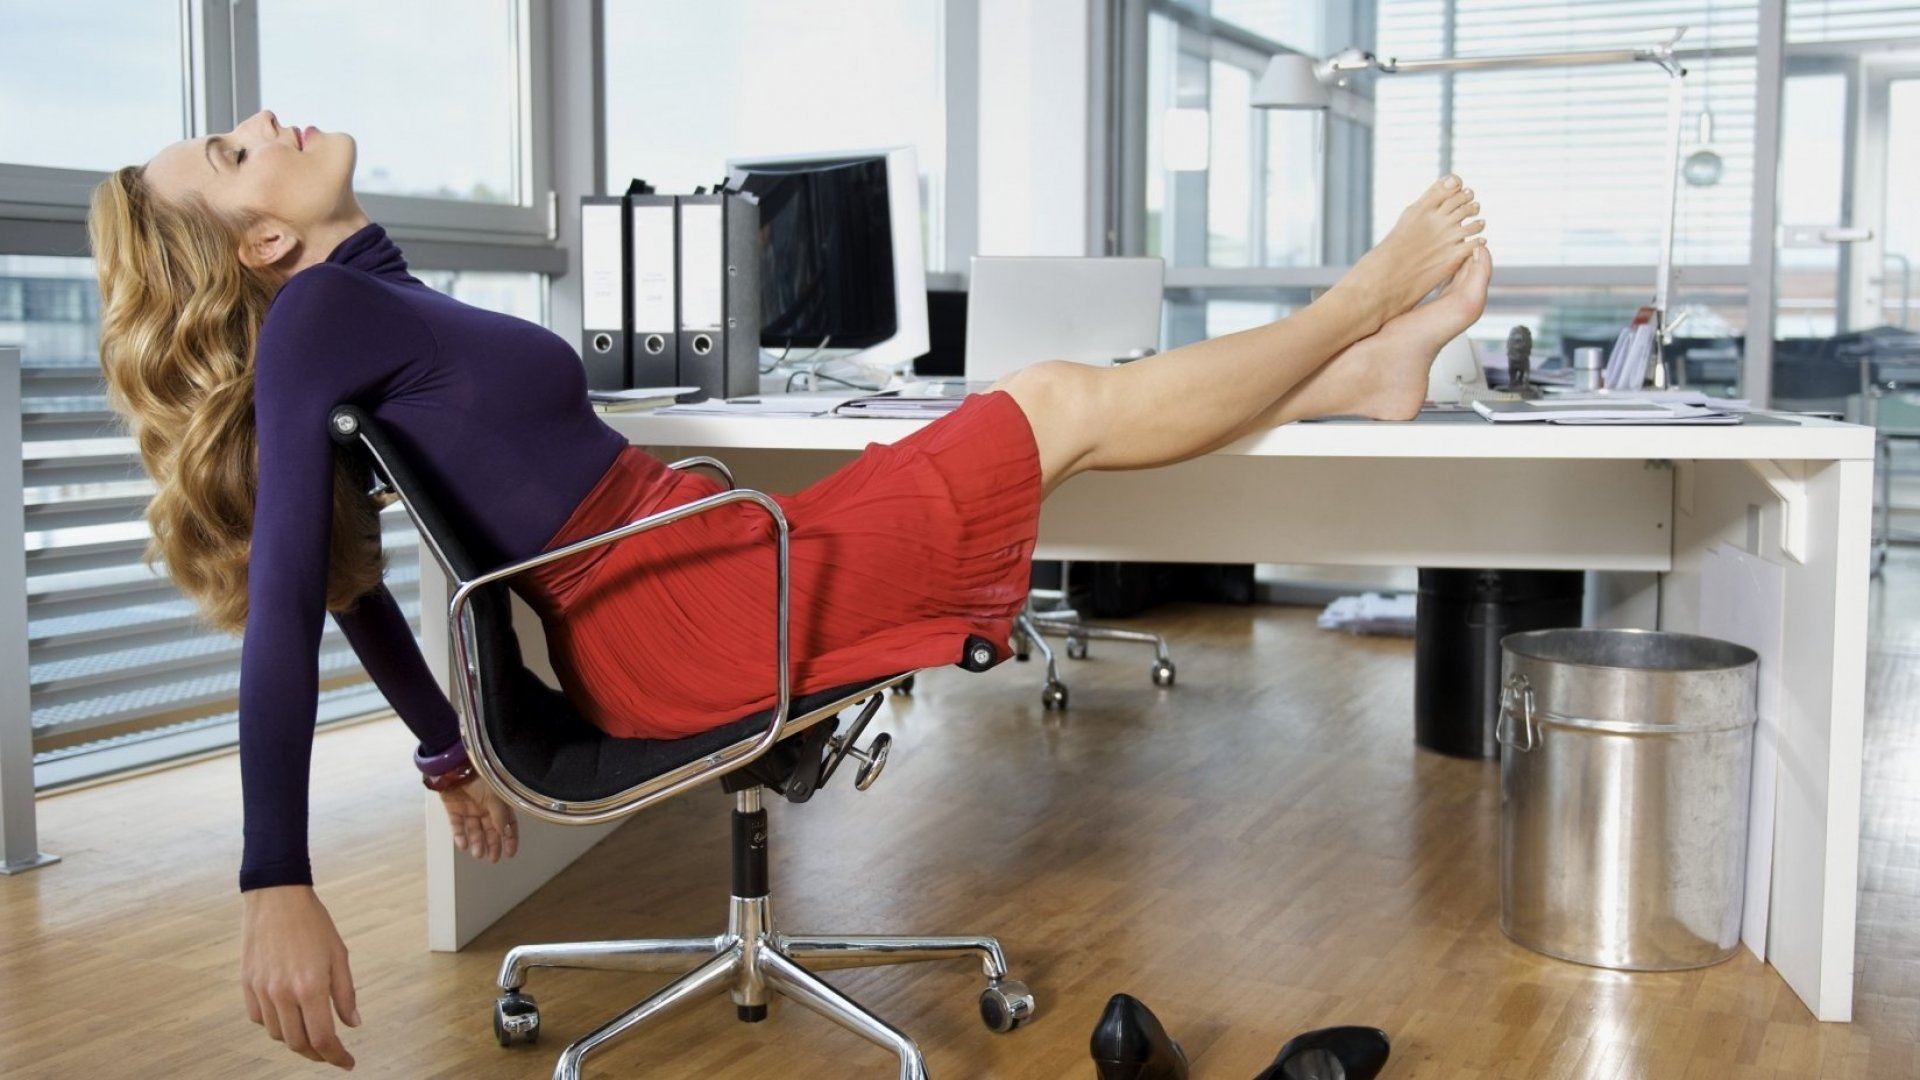 Need a Nap at Work? Here's What to Do